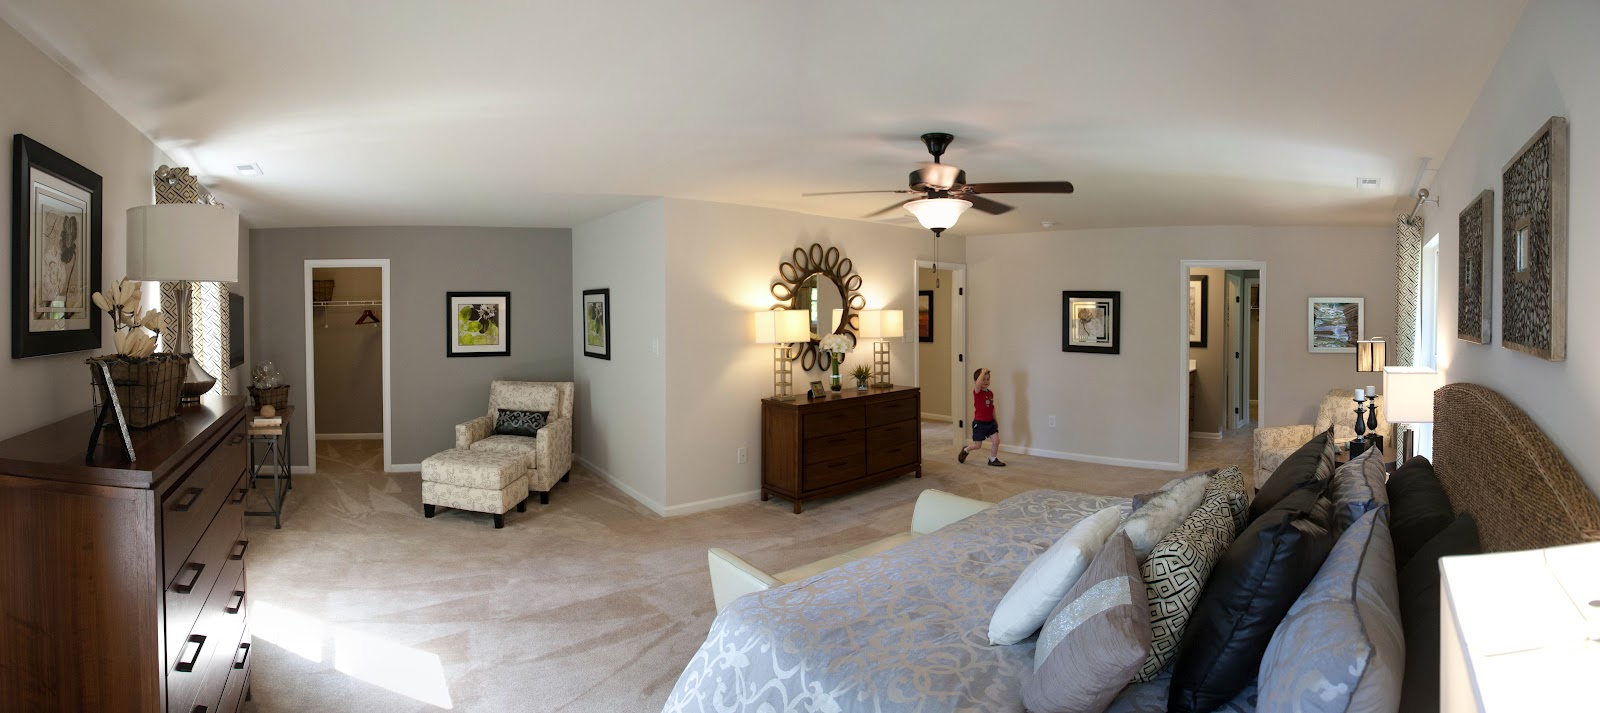 Rome ing in richmond model panorama per plan for Model home master bedrooms